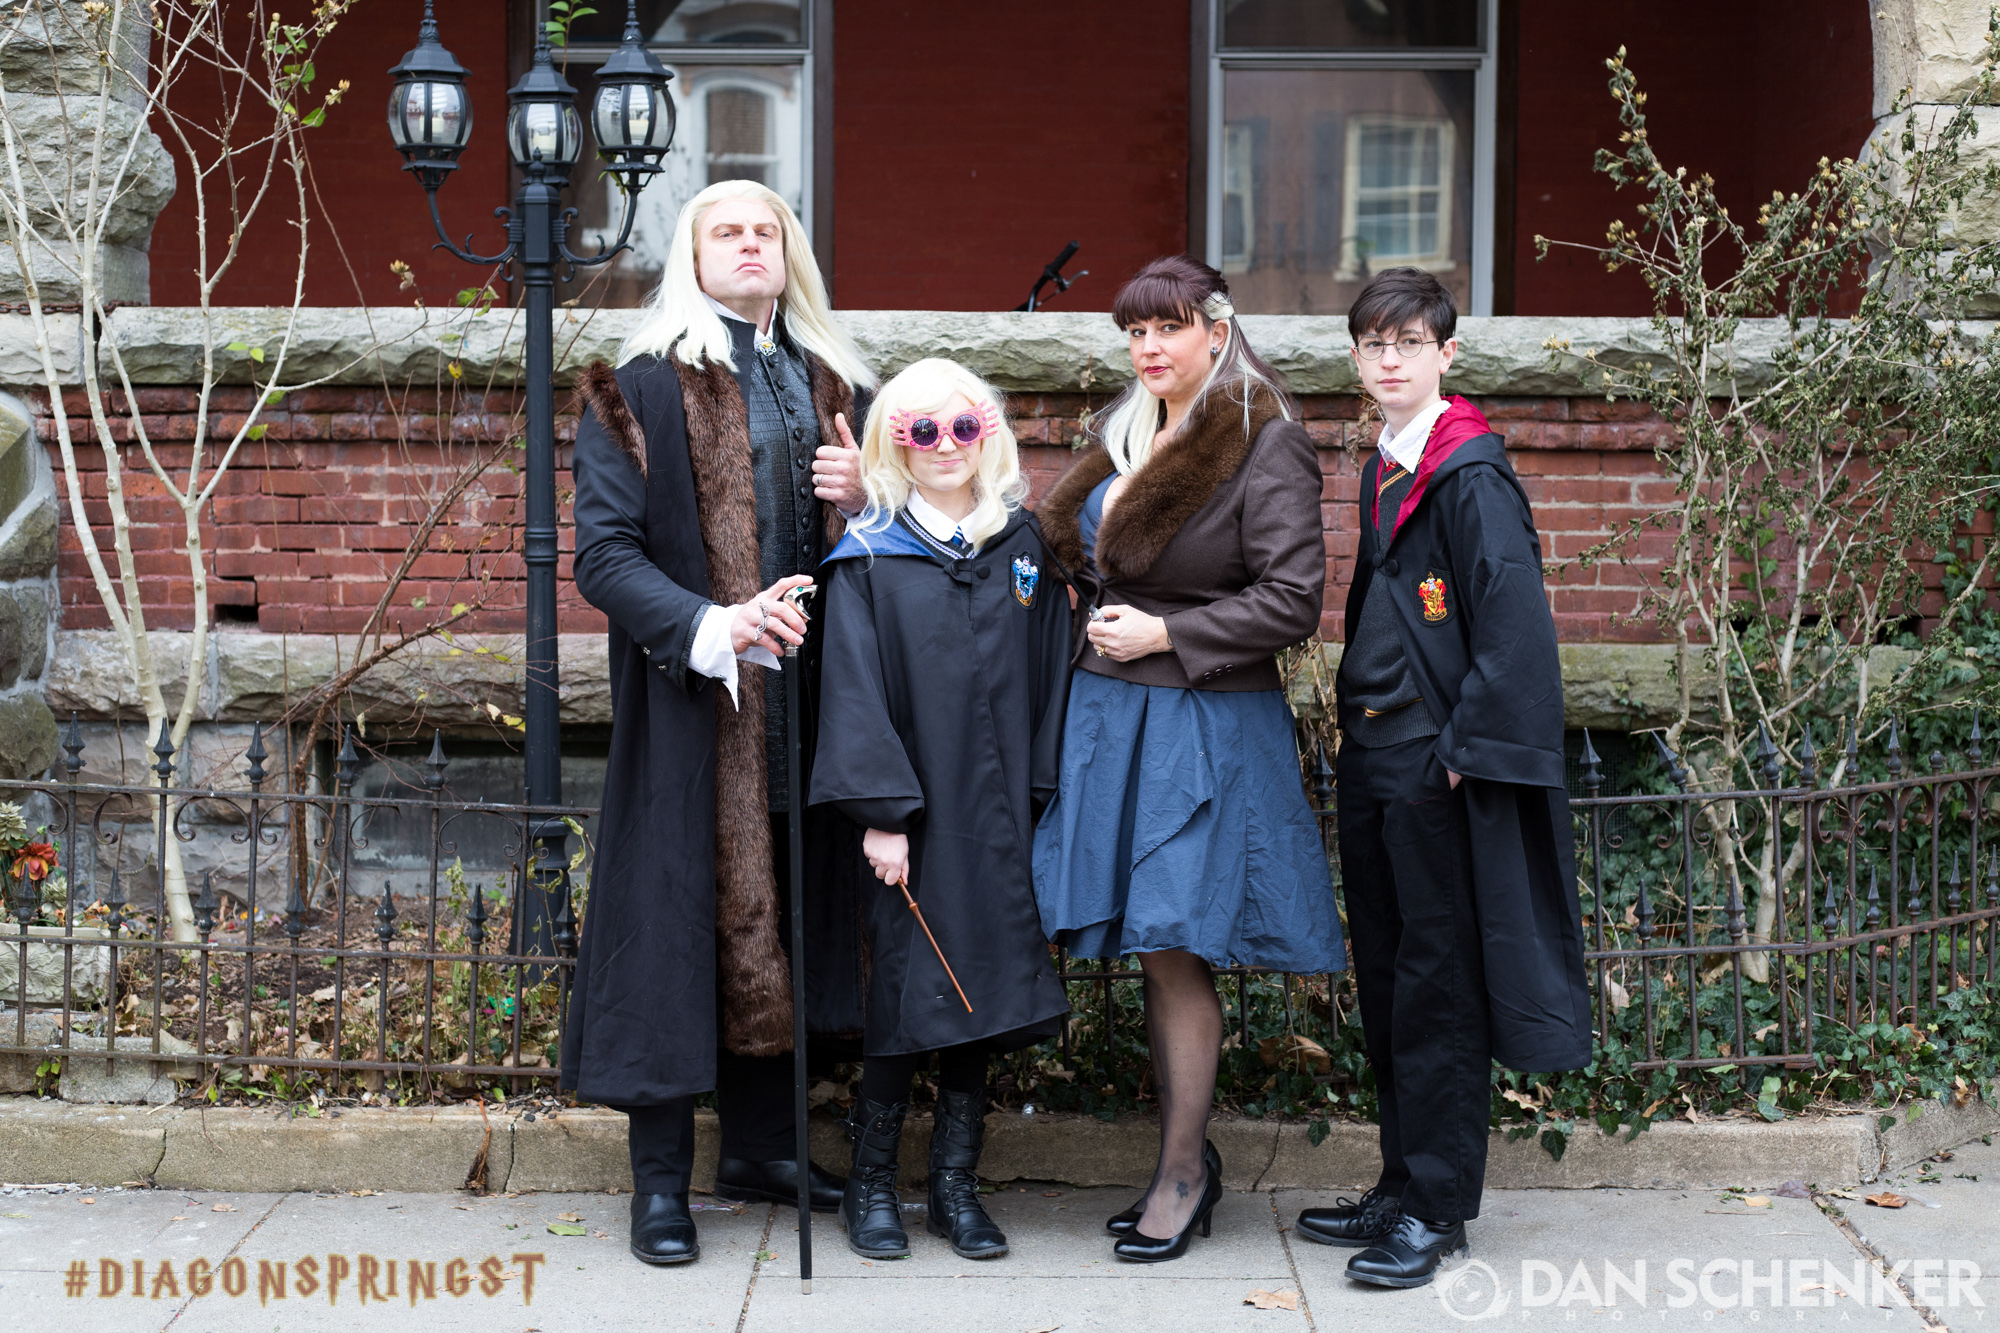 Lucius, Luna,Narcissa, and Mr. Potter, you were a pleasure to meet today. I hope you were able to make time to have some lunch!